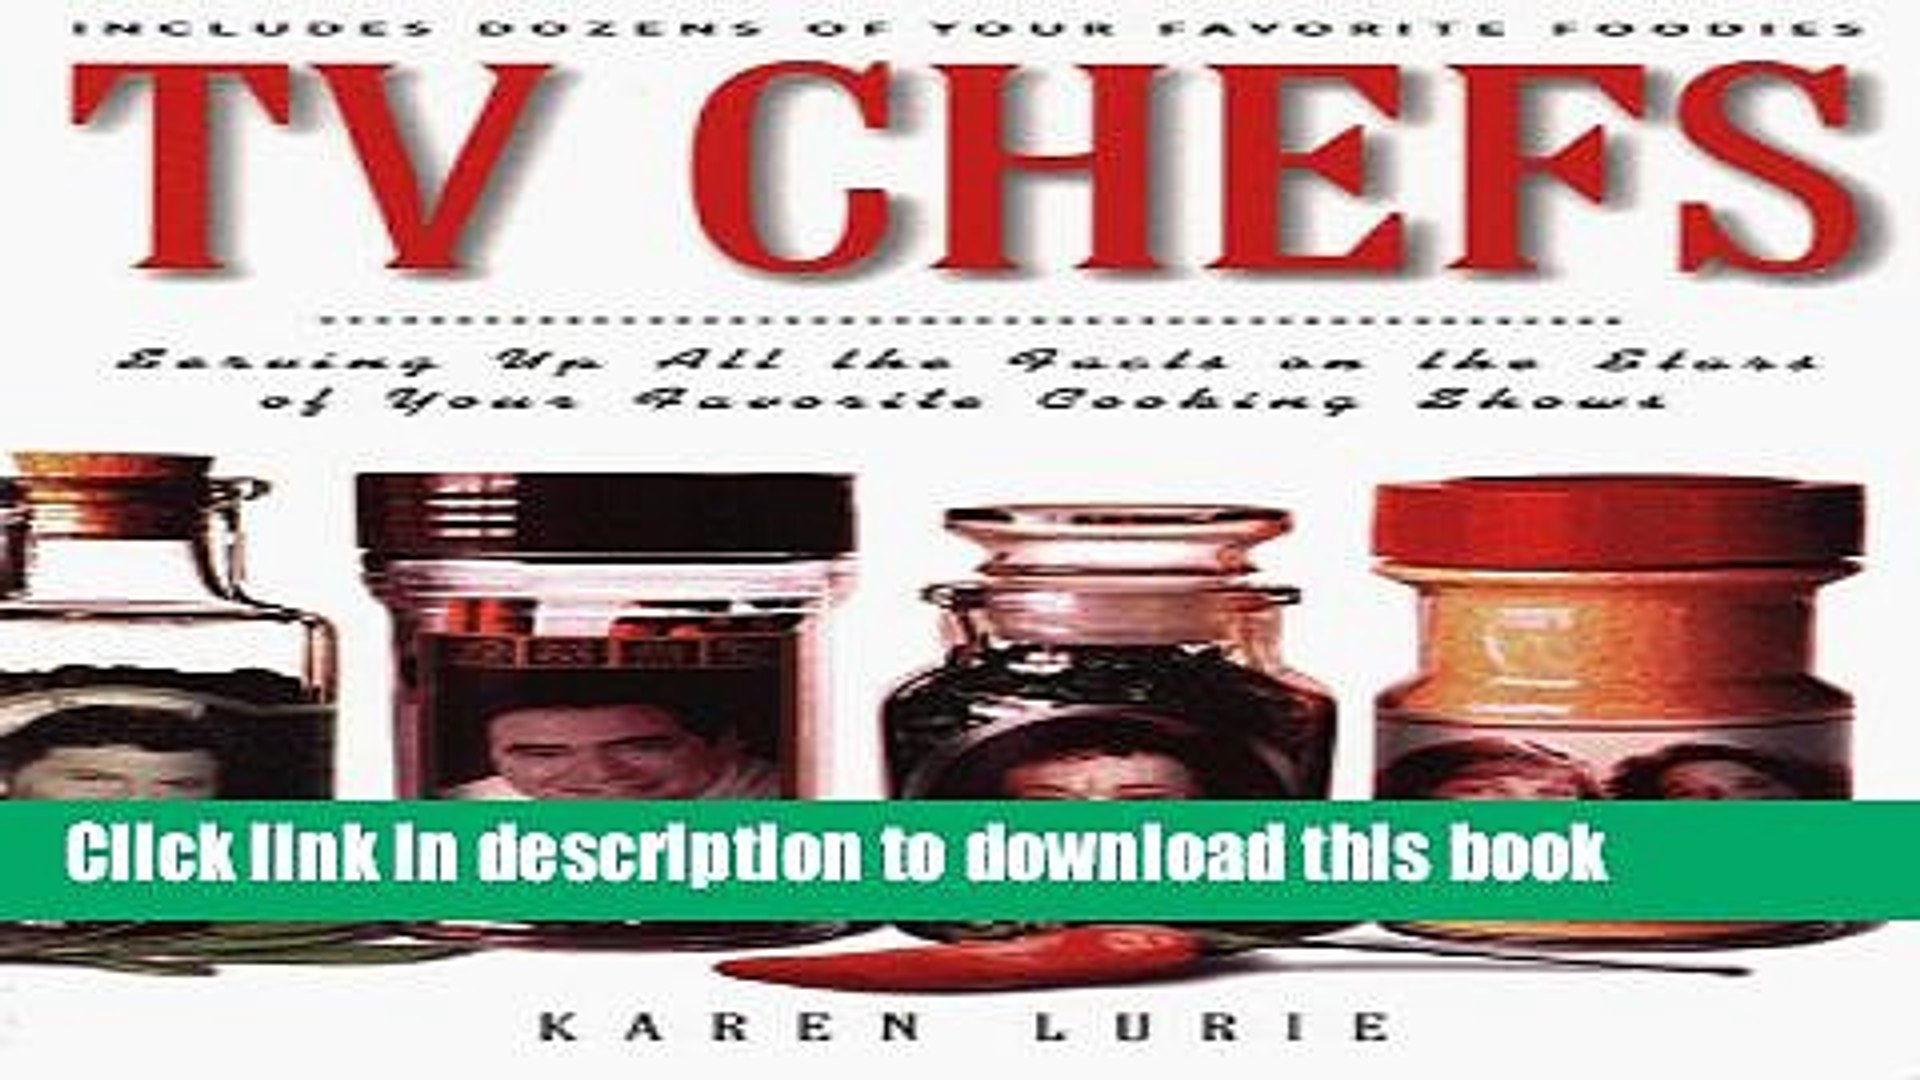 PDF TV Chefs: The Dish on the Stars of Your Favorite Cooking Shows  Read Online